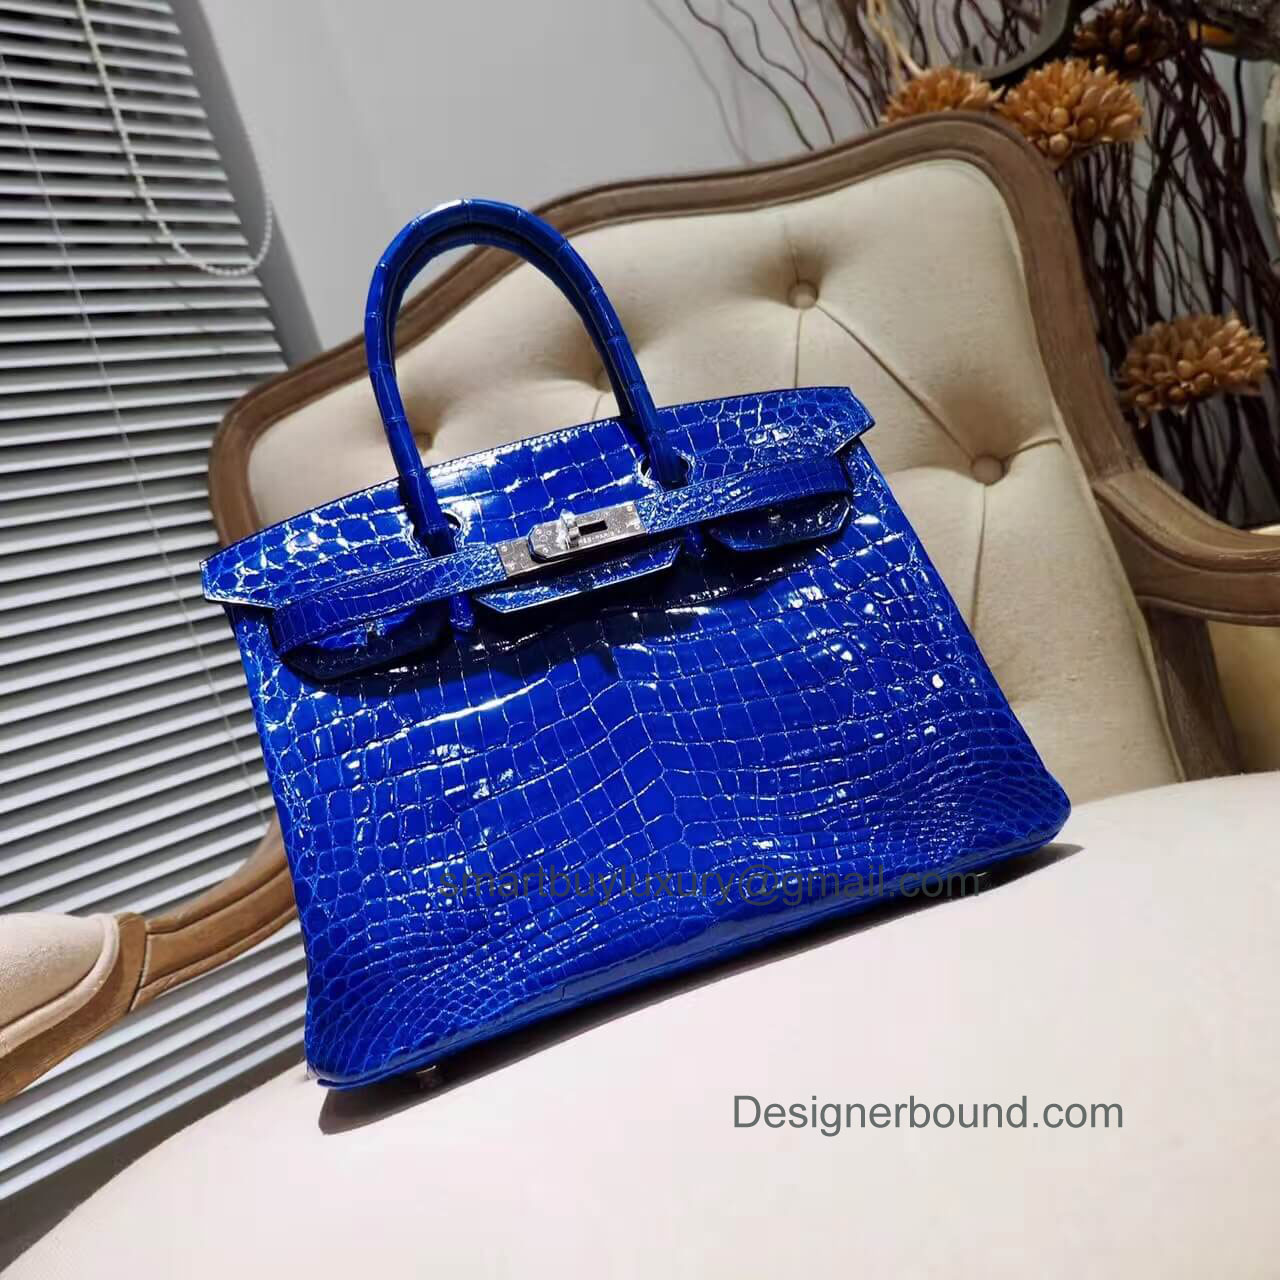 Hermes Birkin 30 Bag in 7t Blue Electric Shiny Nile Croc PHW